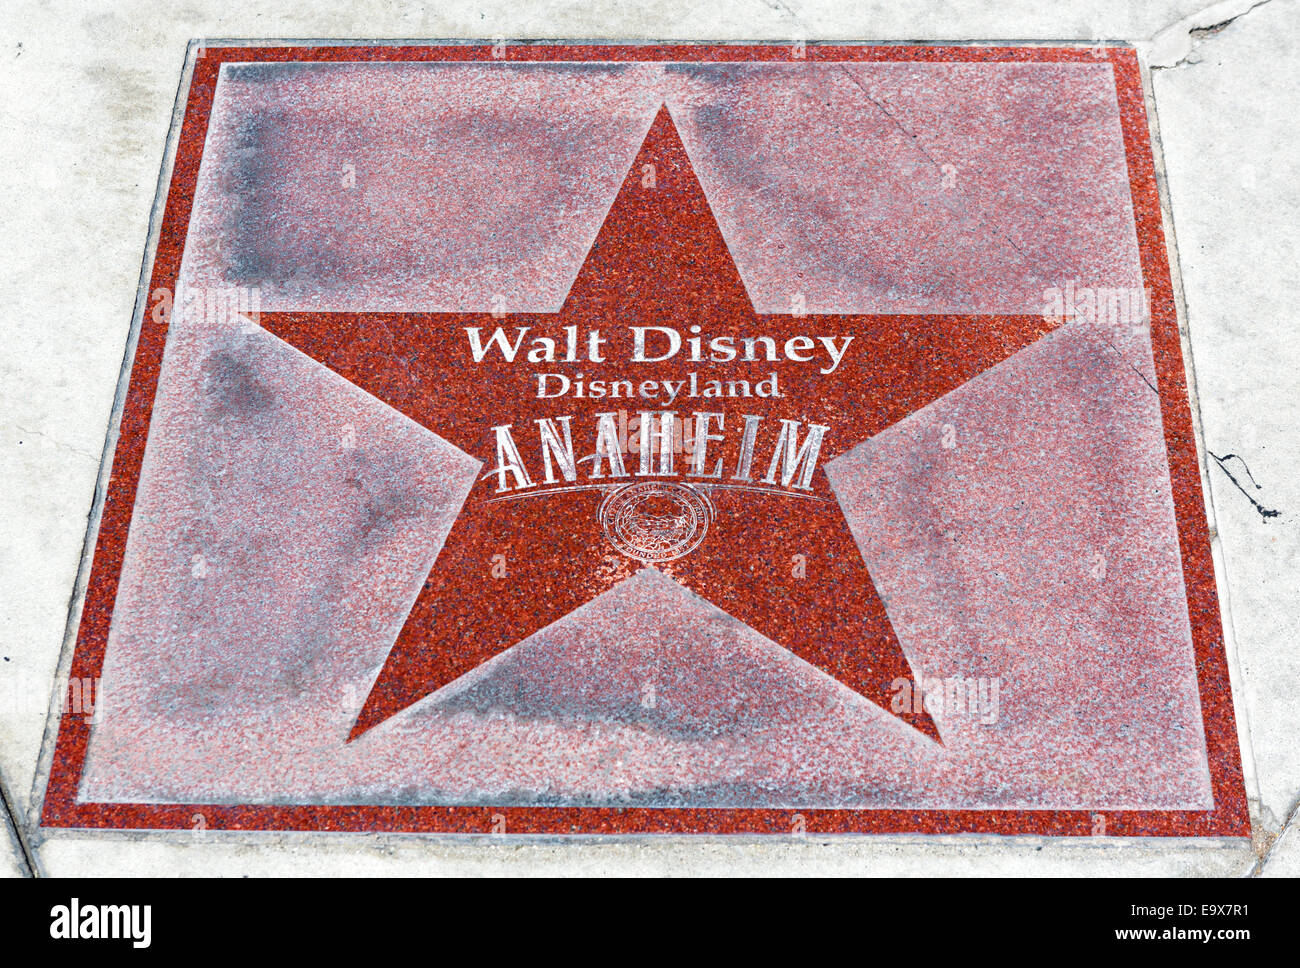 Étoile sur le trottoir devant l'entrée de Disneyland, Anaheim, Orange County, près de Los Angeles, Photo Stock